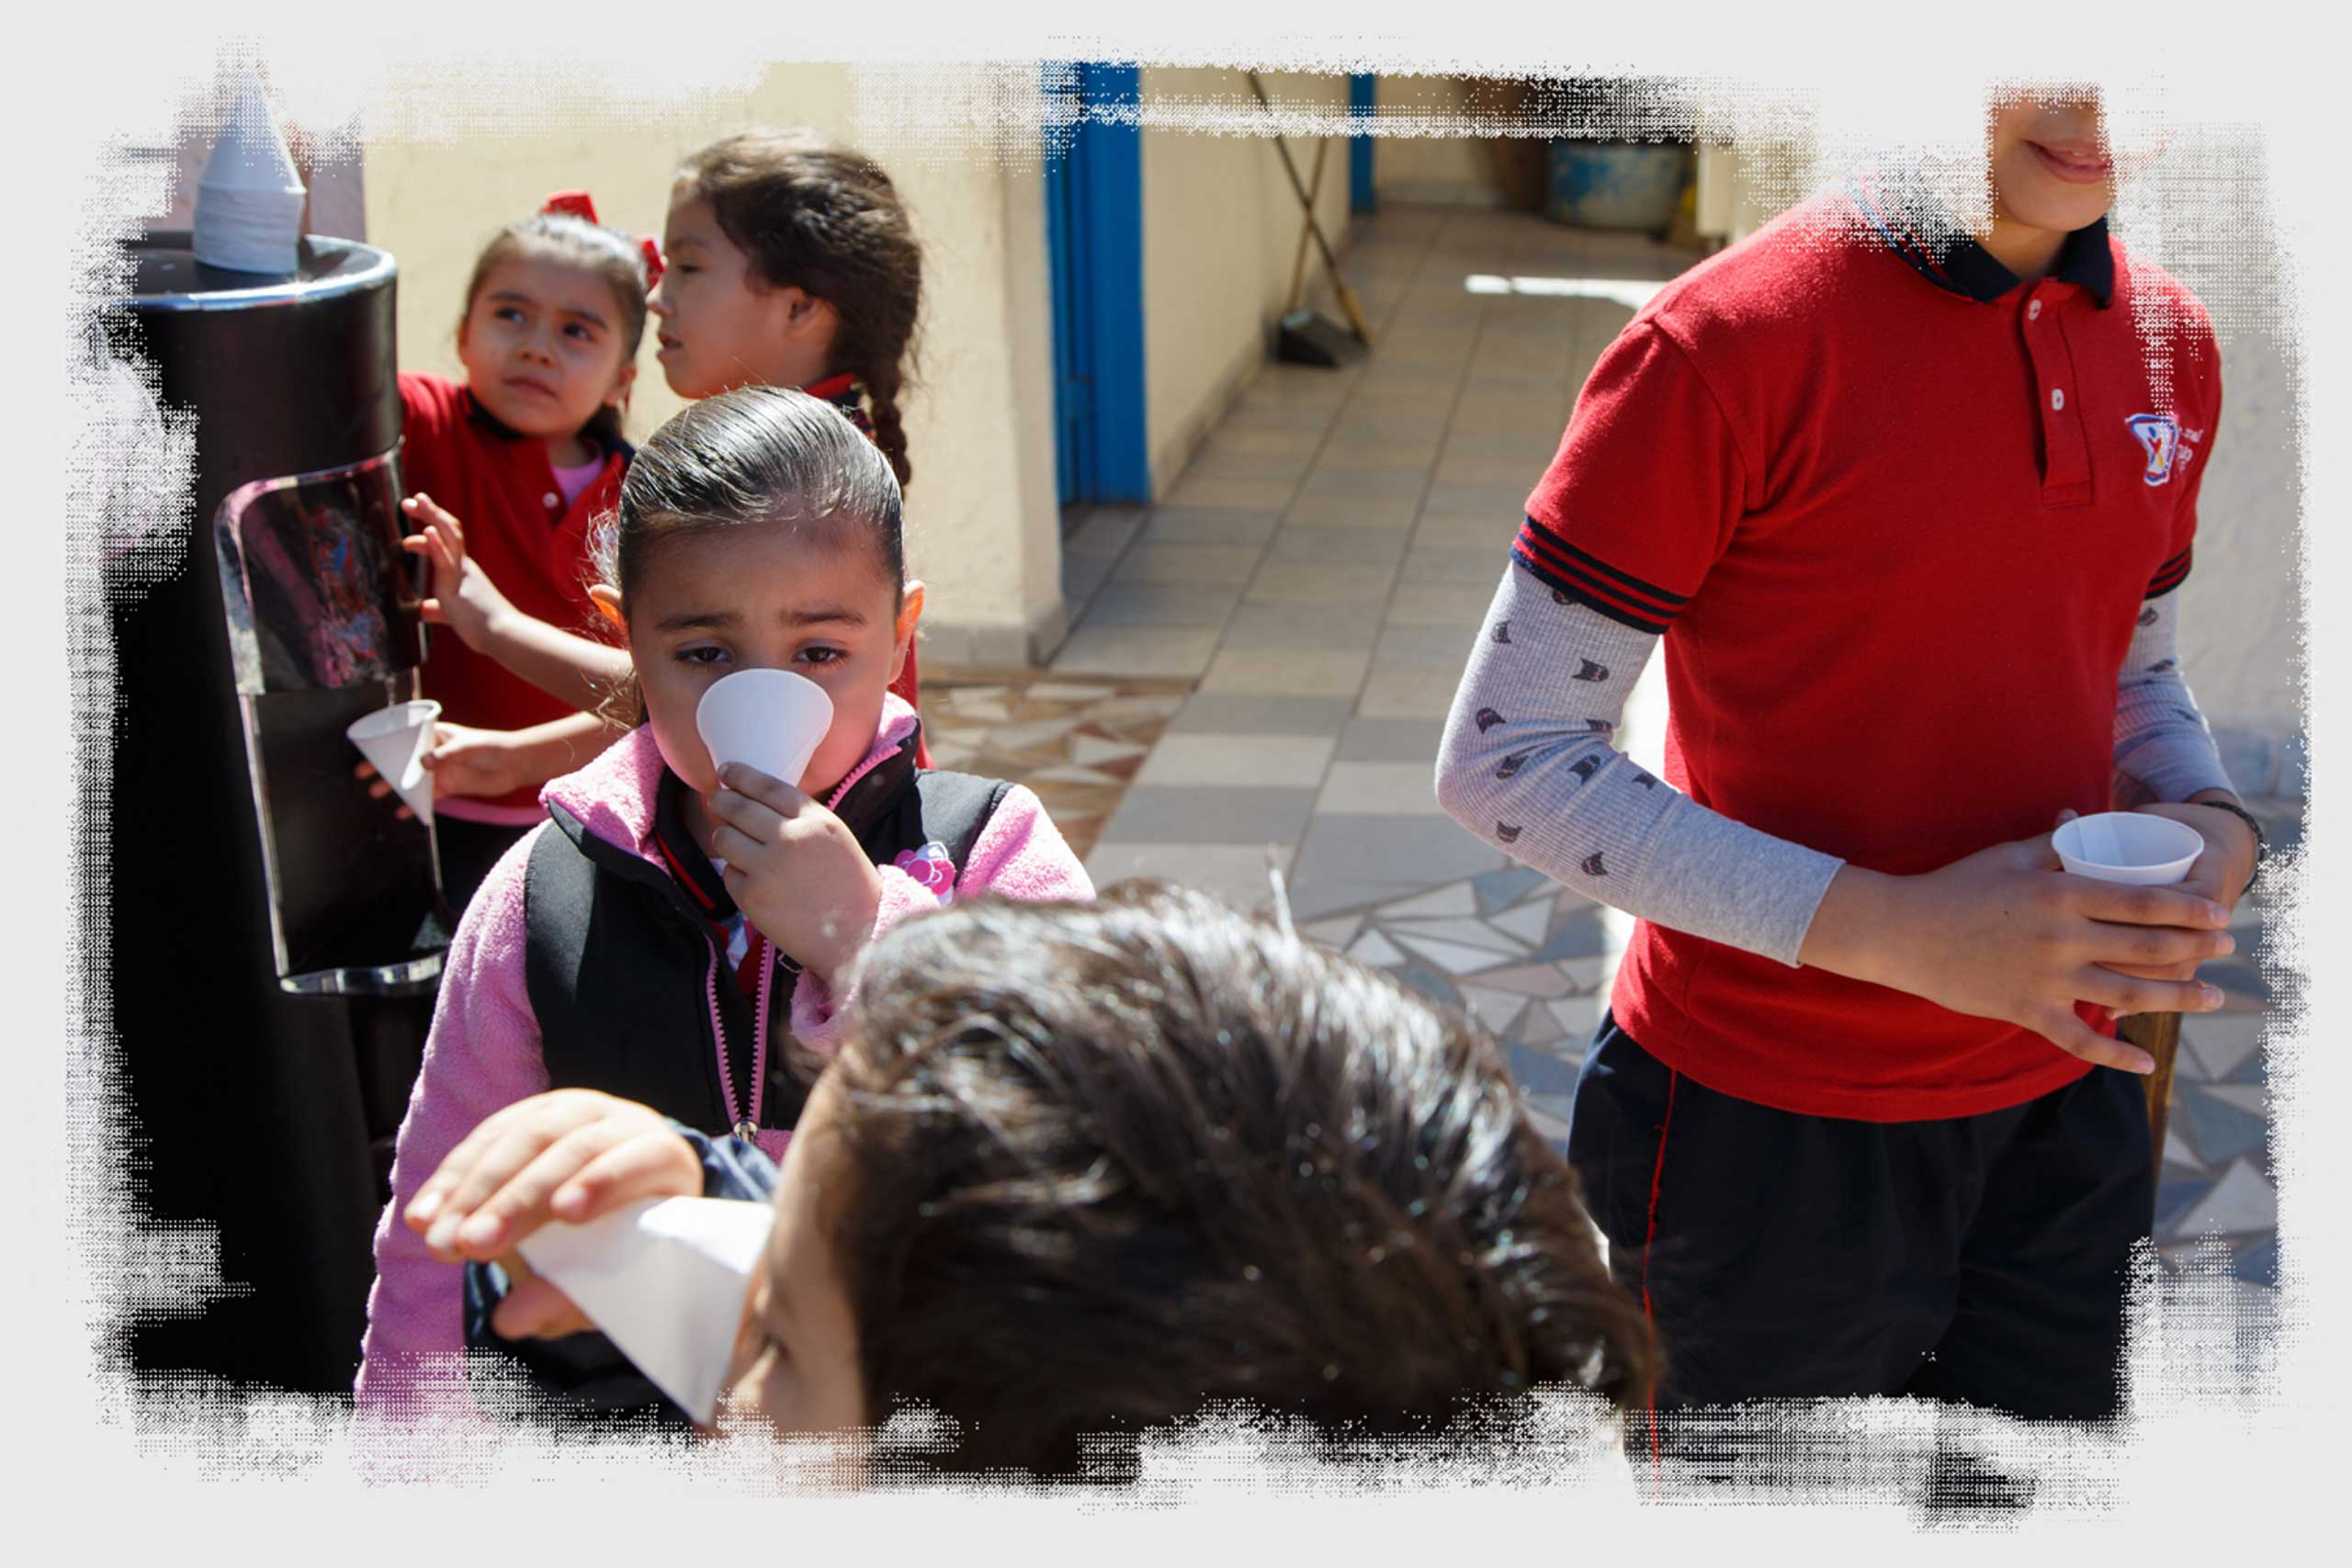 Students drink water from a cooler at Leonardo da Vinci Integral School in Mexicali.